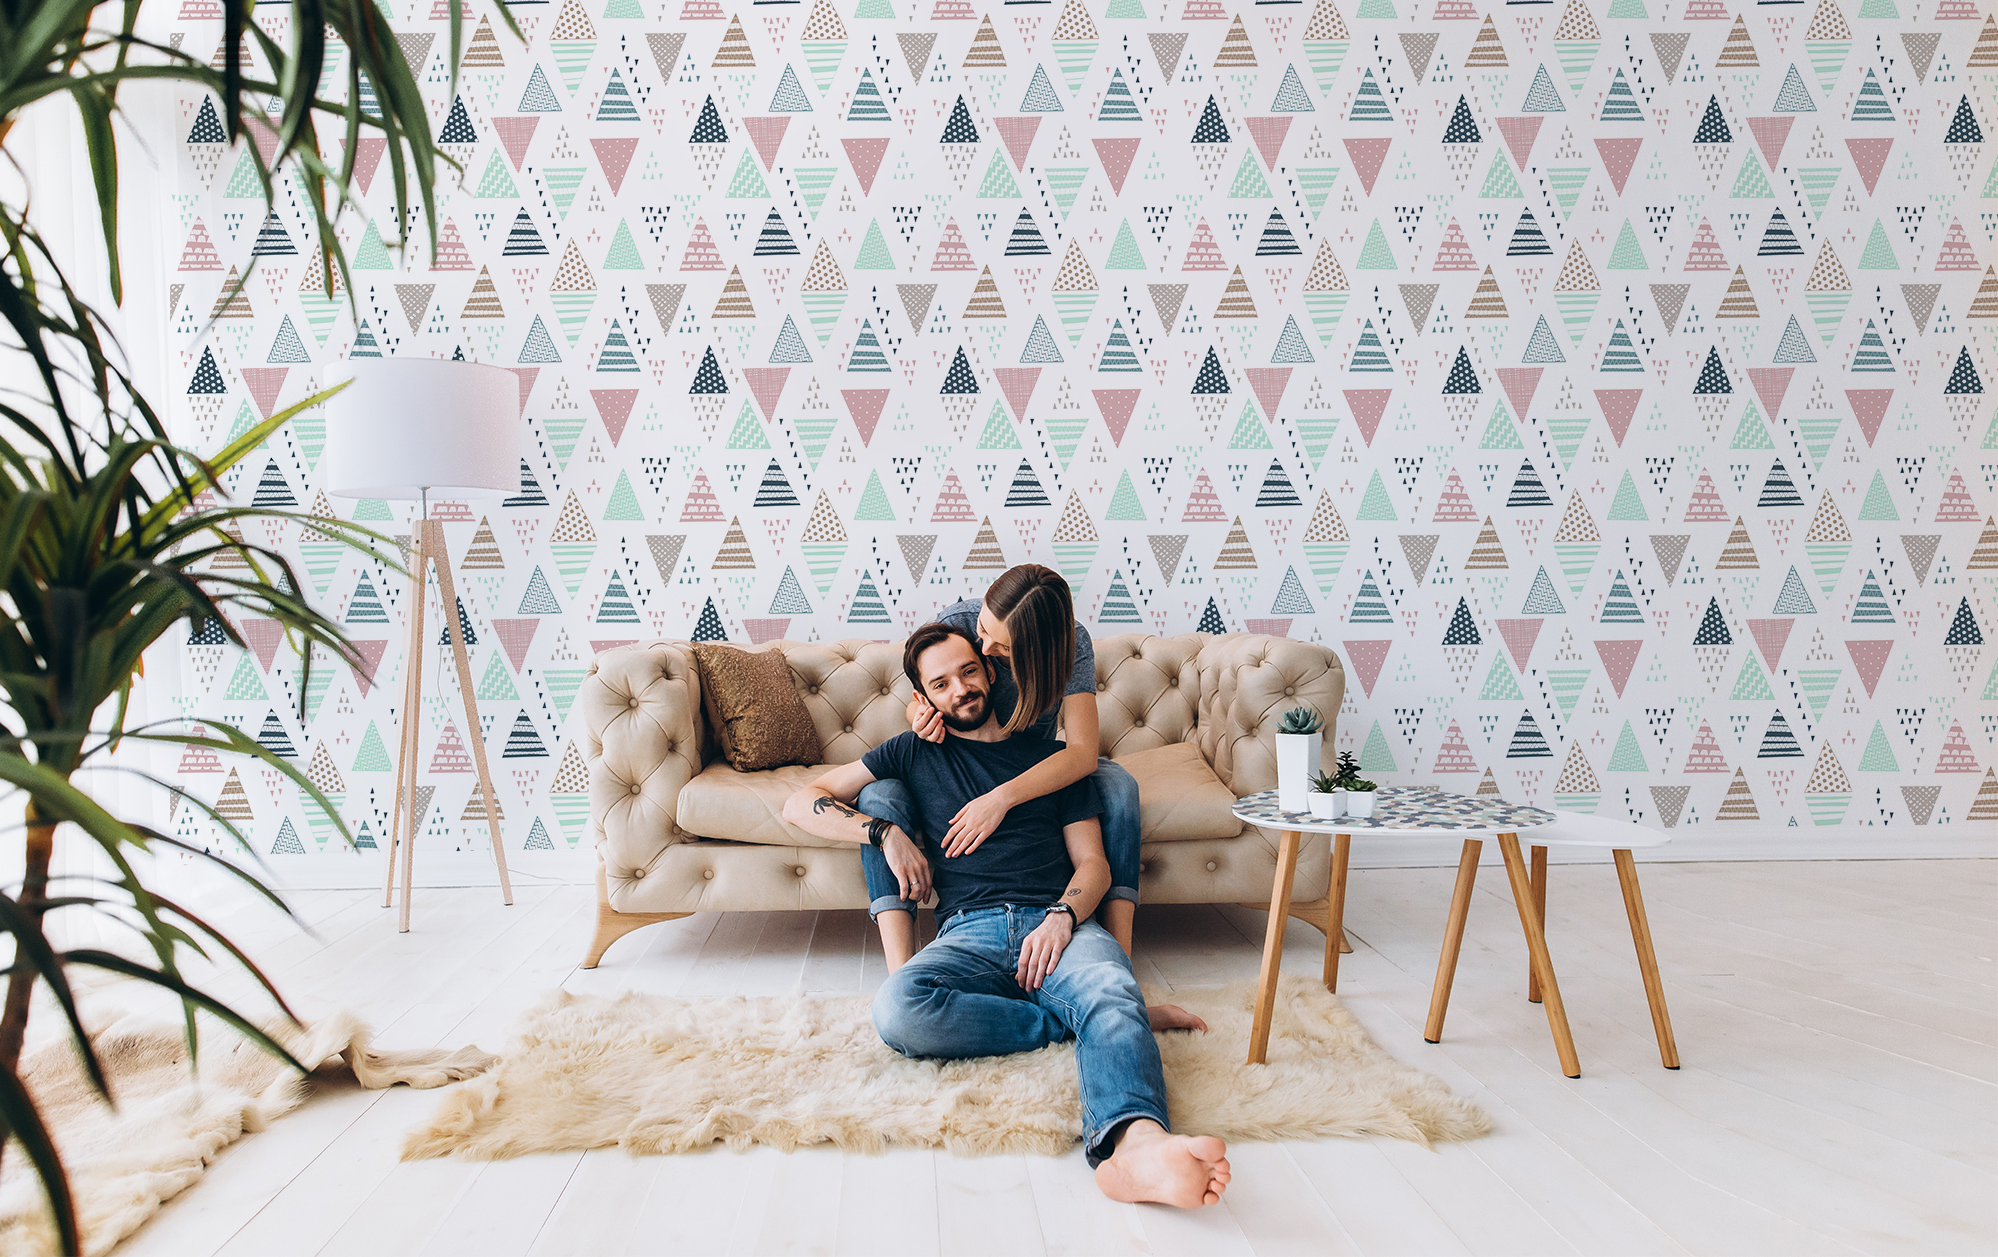 Patterned triangles • Living room - Contemporary - Textures and patterns - Wall Murals - Stickers